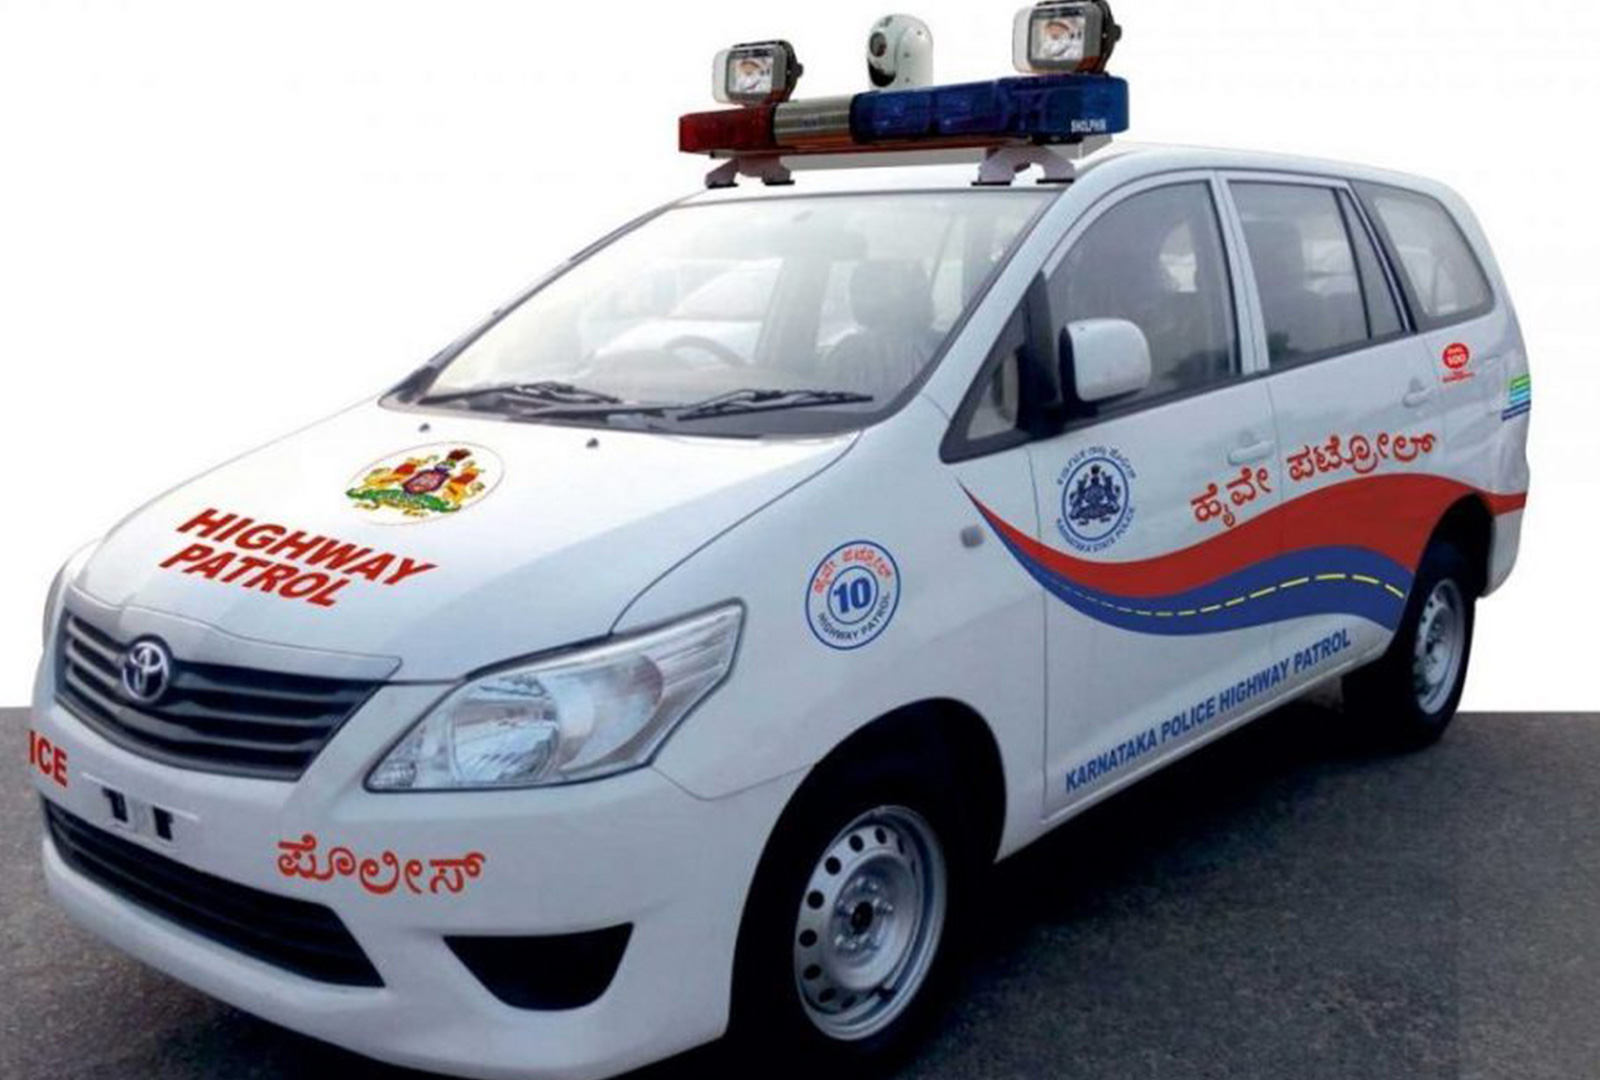 Highway Patrol Vehicle (HPV)